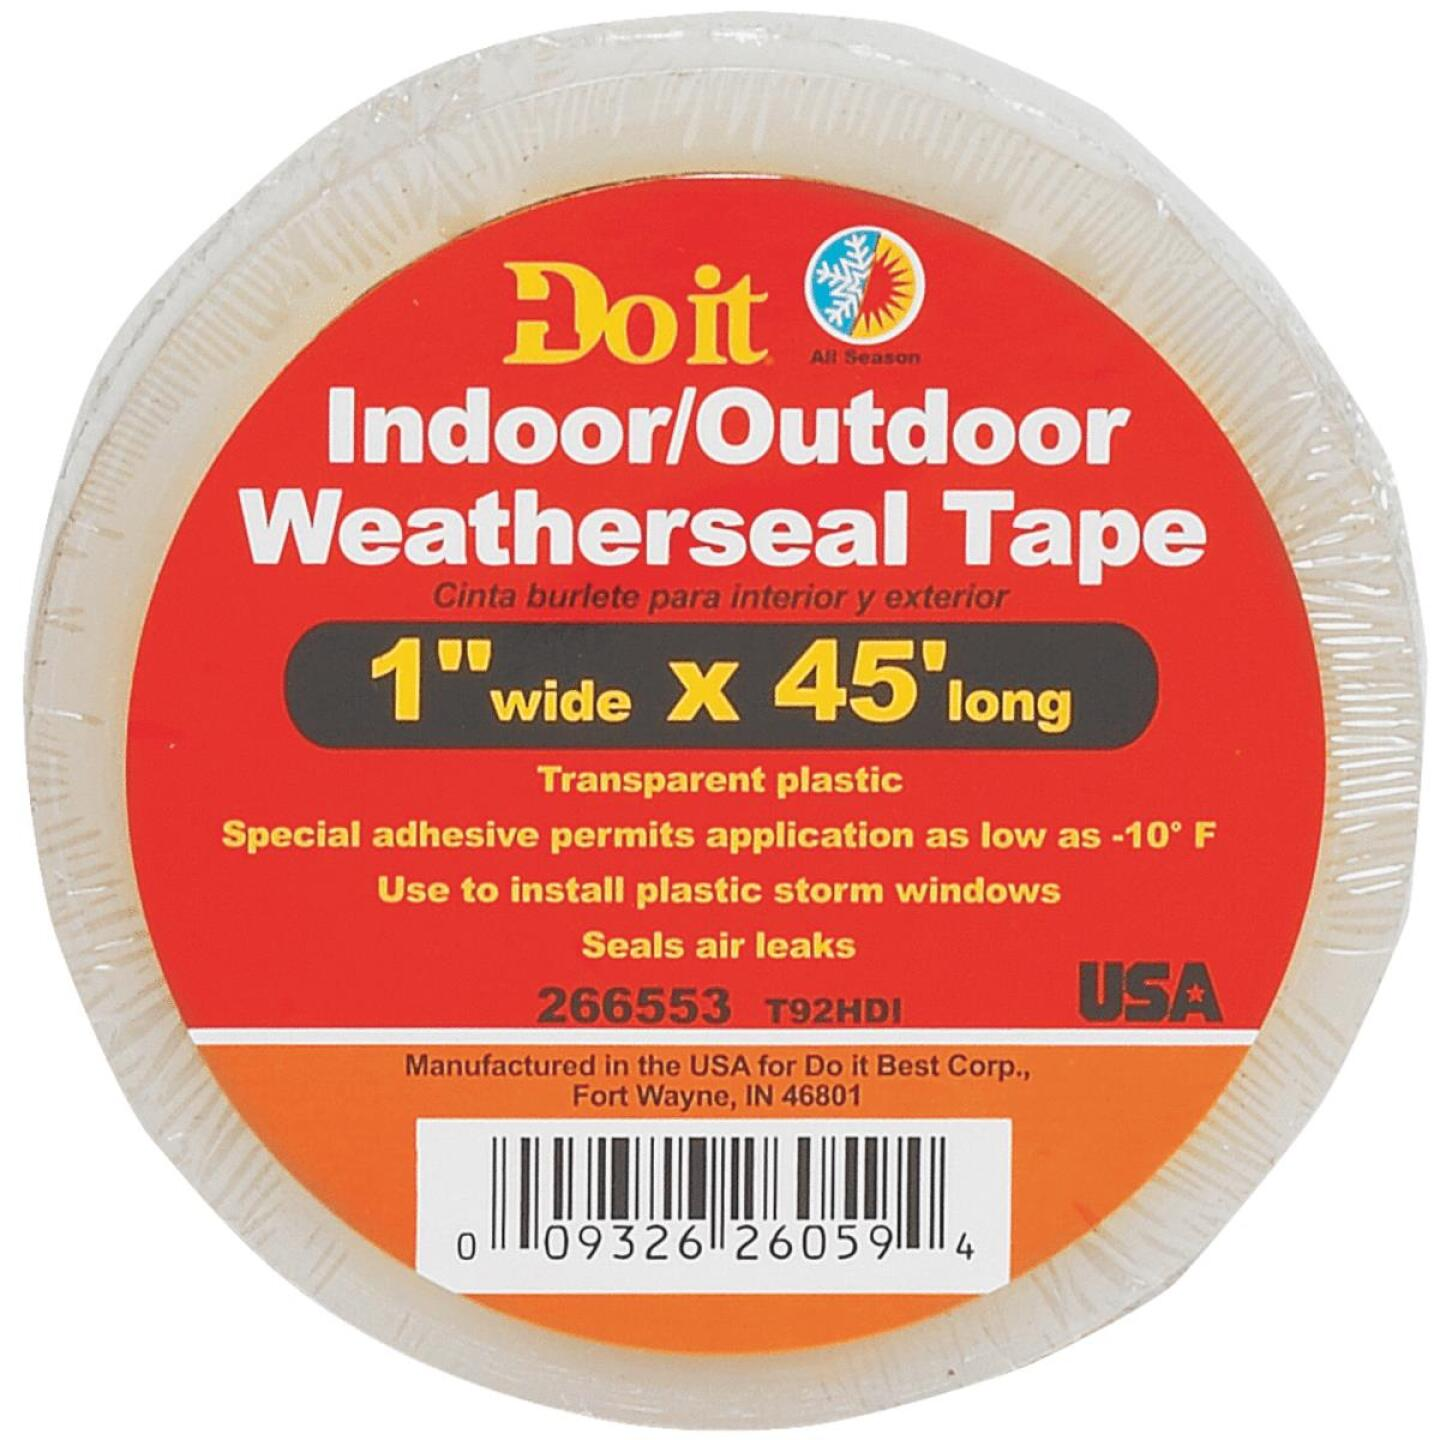 Do it 1 In. x 45 Ft. Clear Weatherseal Tape Image 2